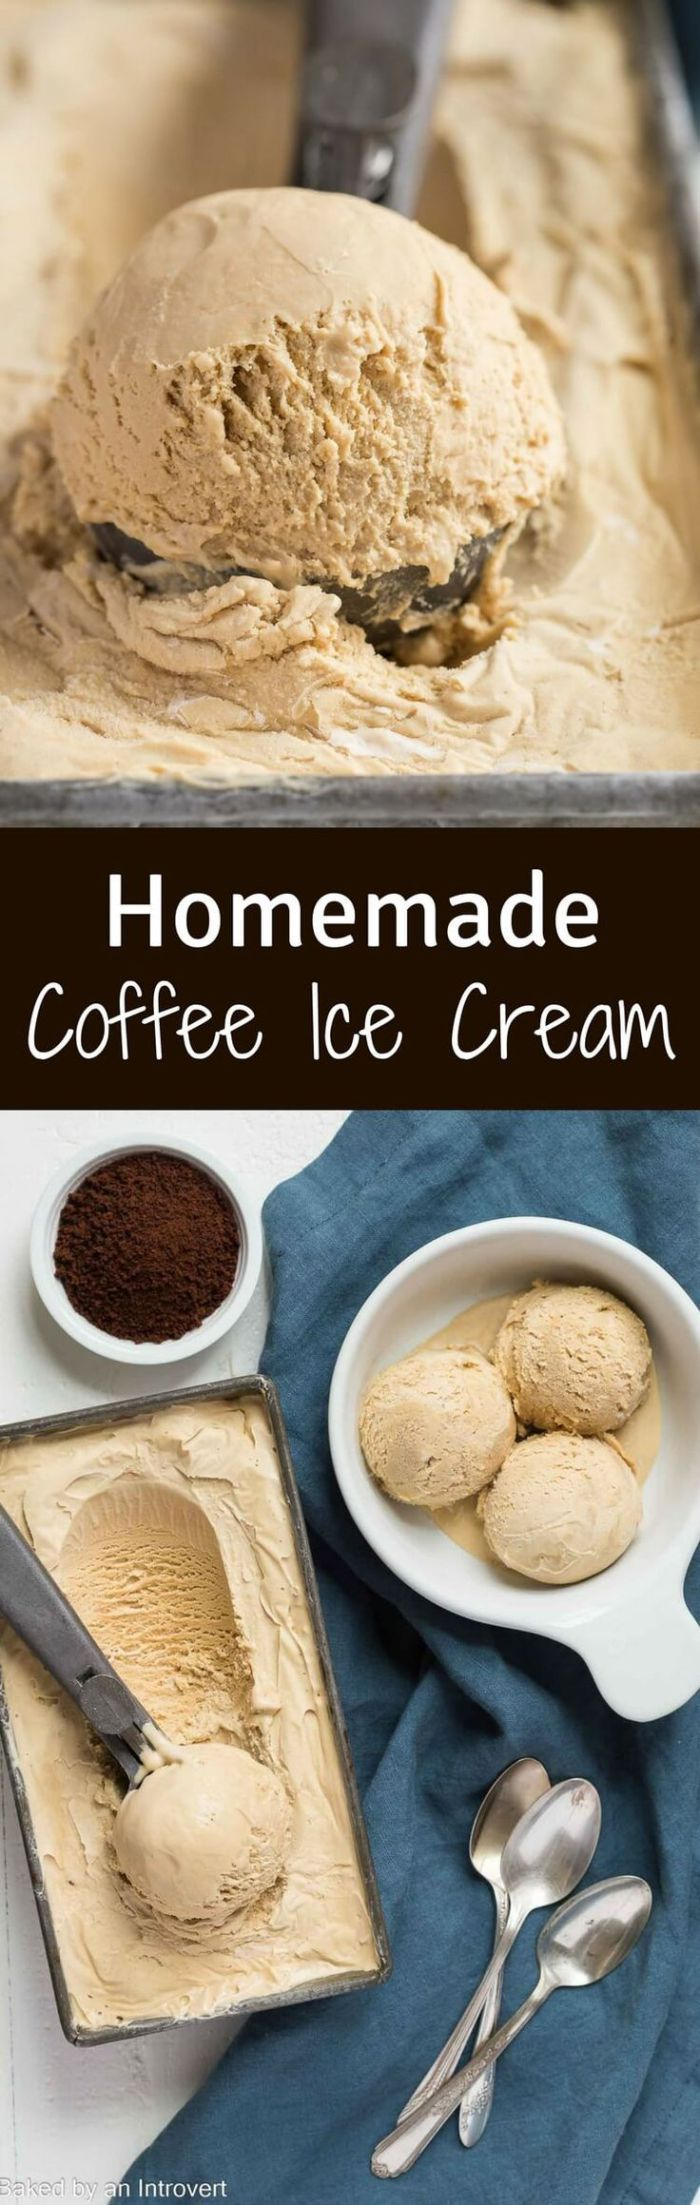 Homemade Coffee Ice Cream made just like old fashioned ice cream! This recipe will satisfy your sweet coffee cravings an